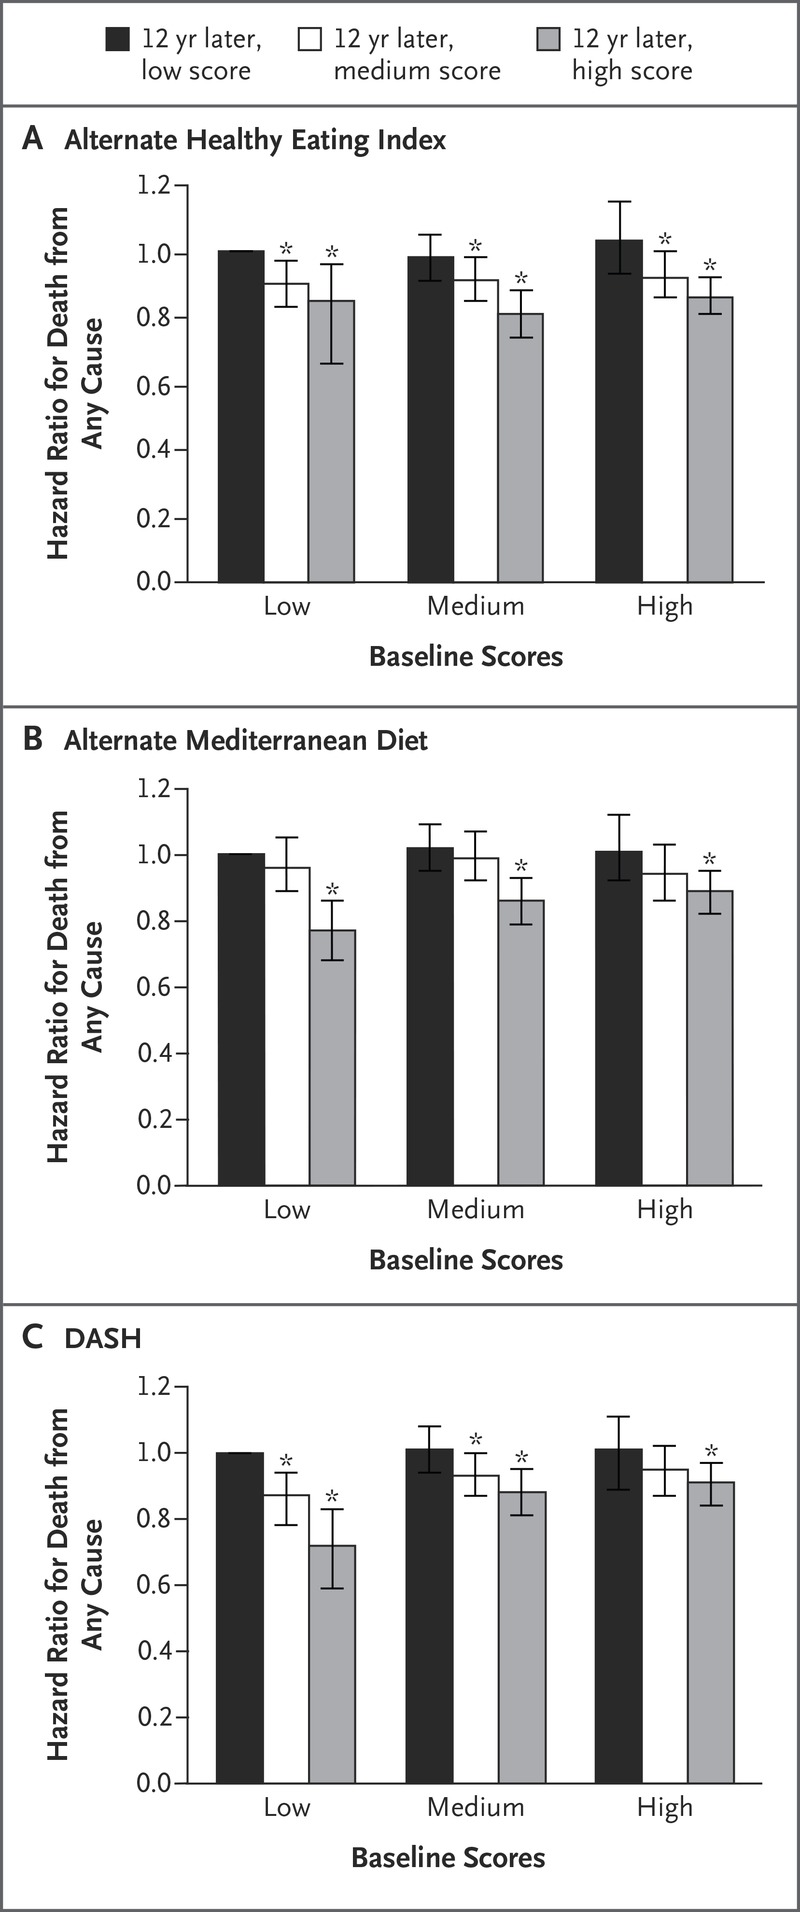 dietary approaches to stop hypertension (dash) score